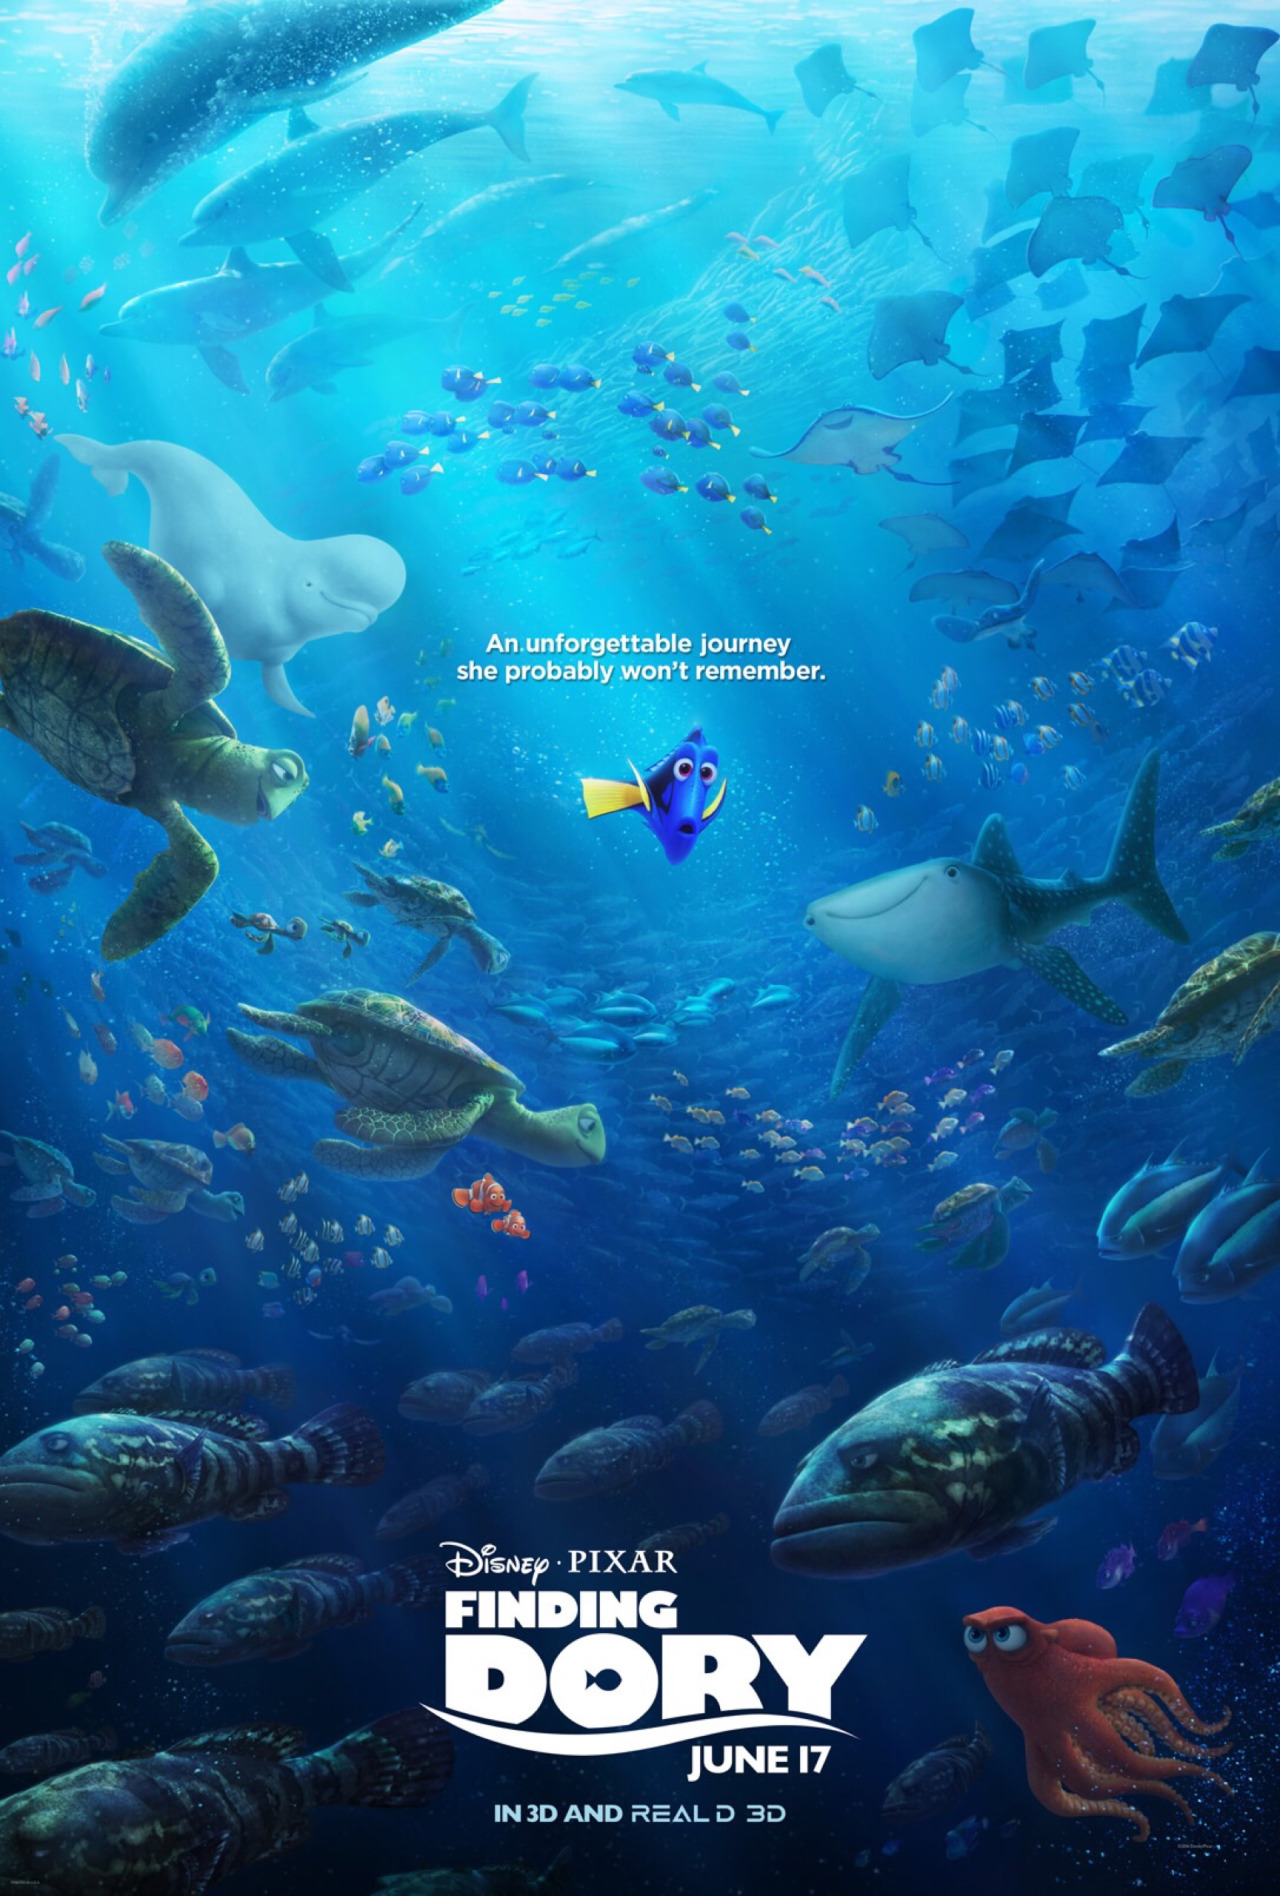 Finding dory poster finding nemo know your meme anunforgettable journey she probably wont remember die pixar finding june 17 altavistaventures Gallery